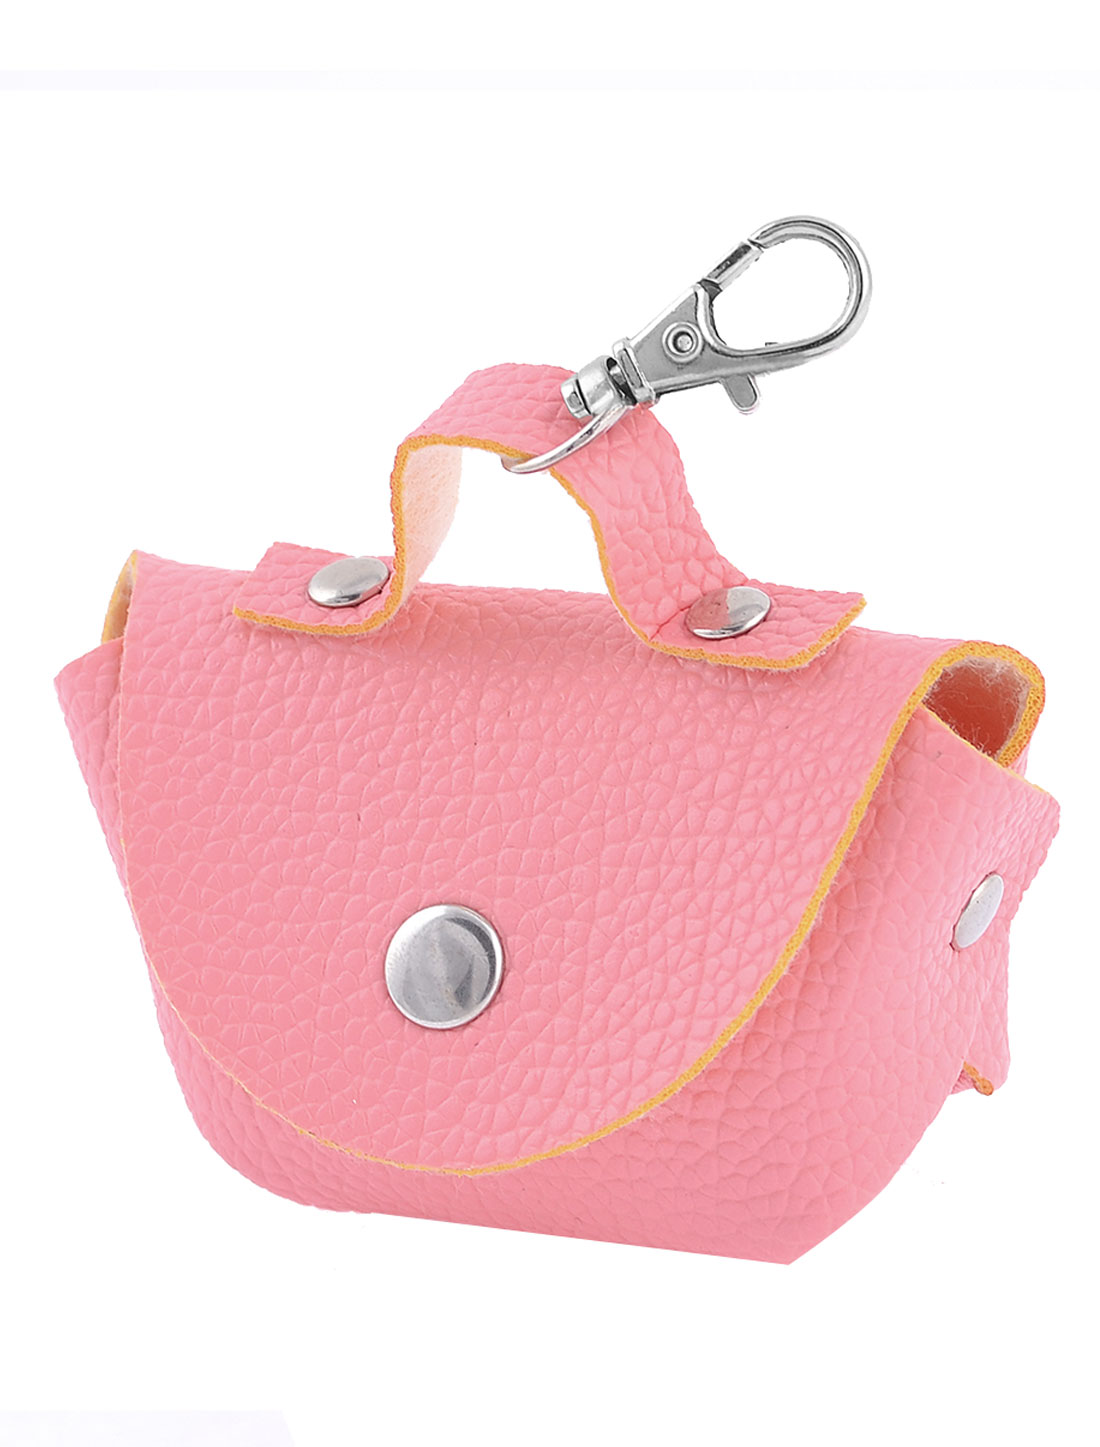 Faux Leather Litchi Pattern Press Stud Closure Coin Purse Keys Bag Pink